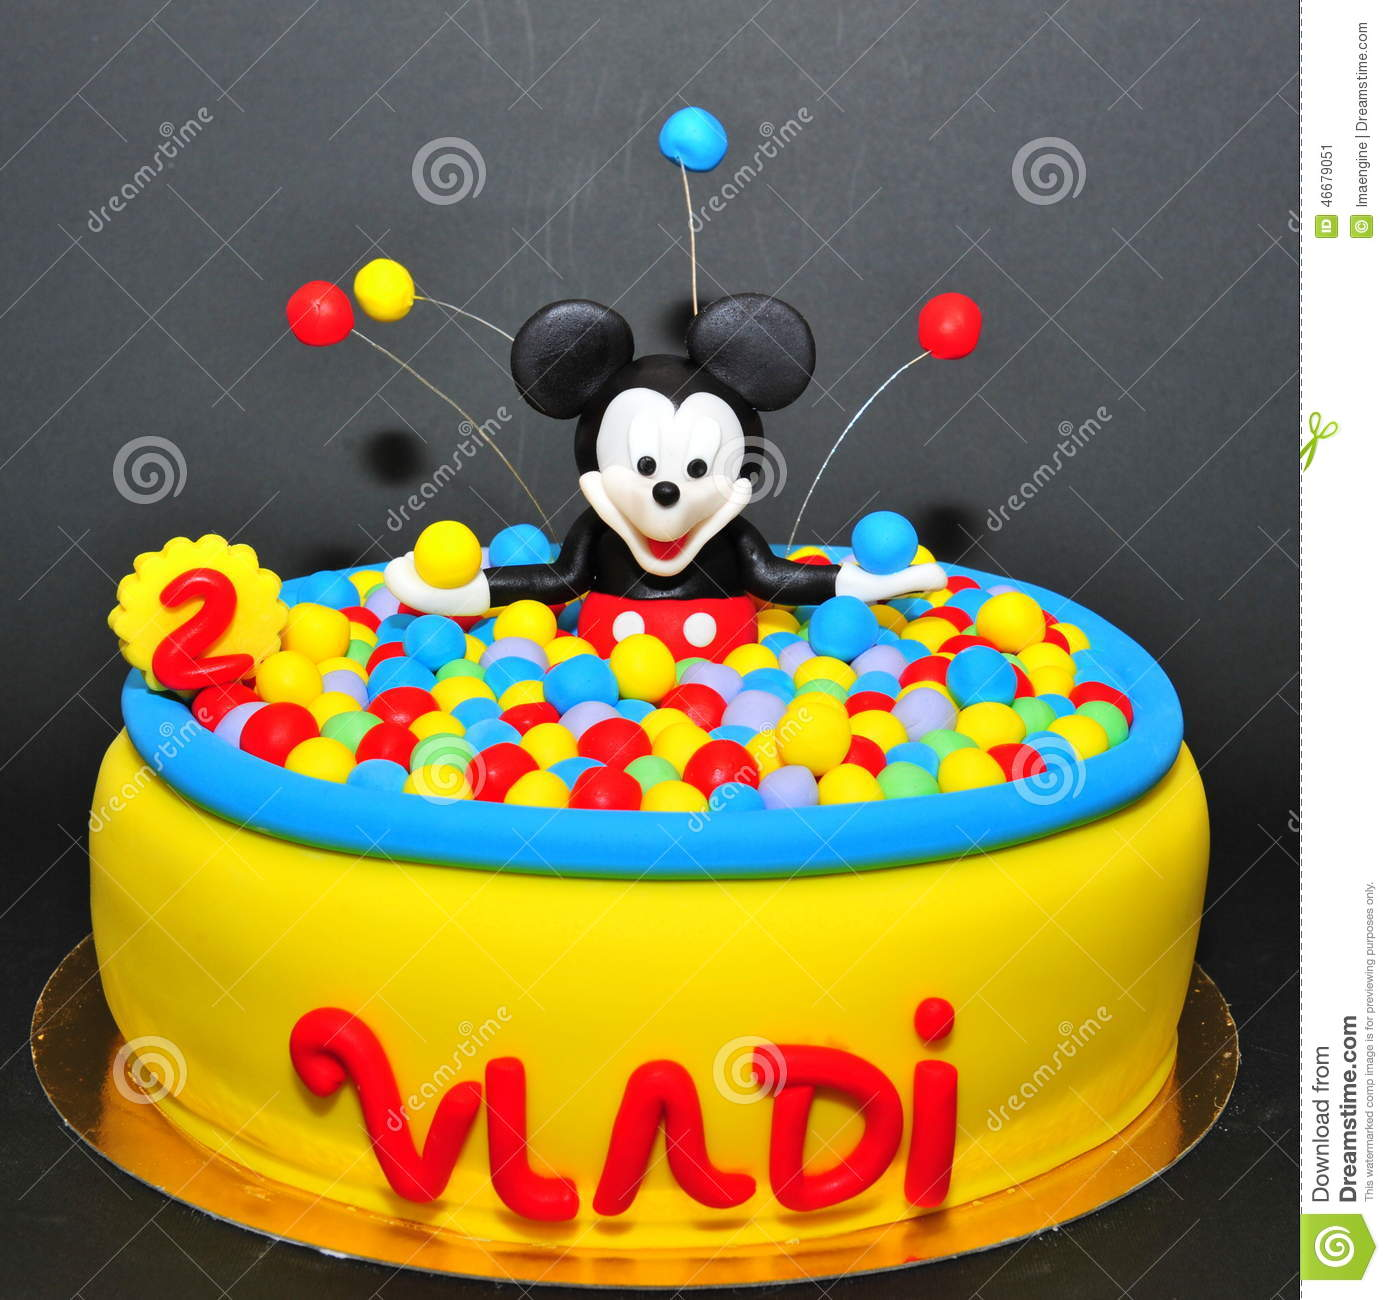 Sensational Mickey Mouse In Colorful Balls Pool Cake Editorial Photo Image Funny Birthday Cards Online Bapapcheapnameinfo